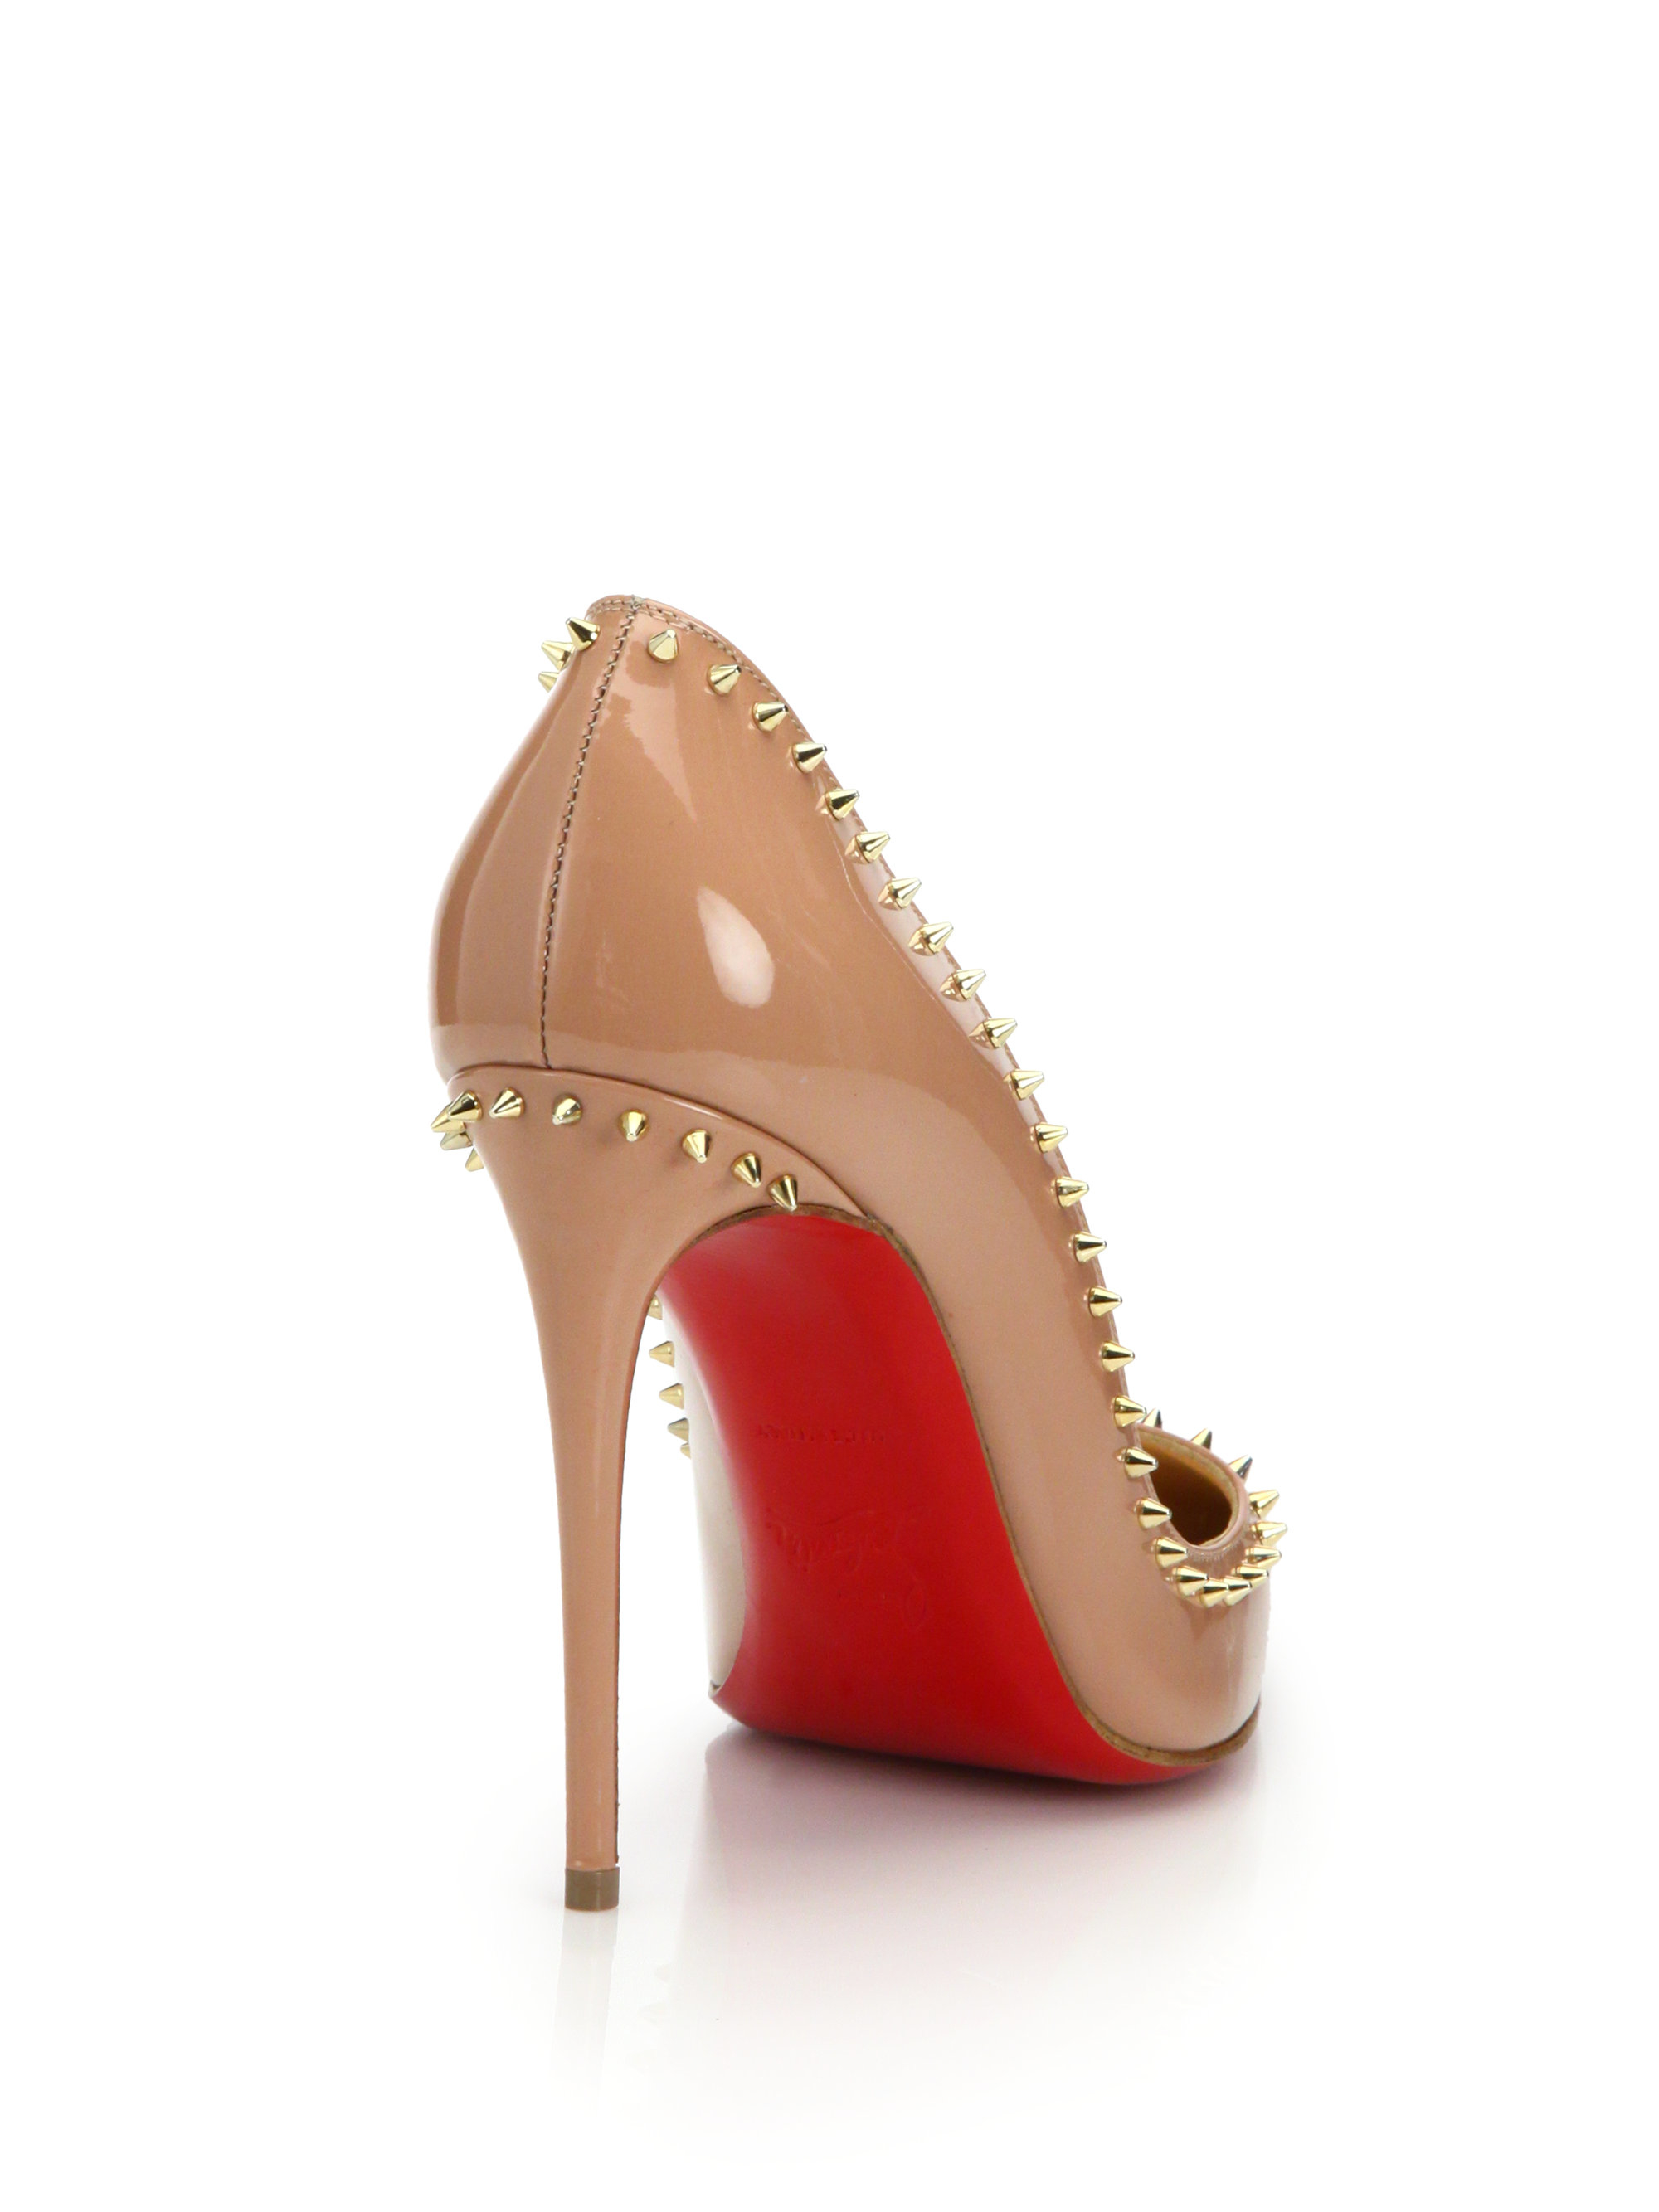 replica shoes for men - Christian louboutin Anjalina Spiked Patent Leather Pumps in Beige ...